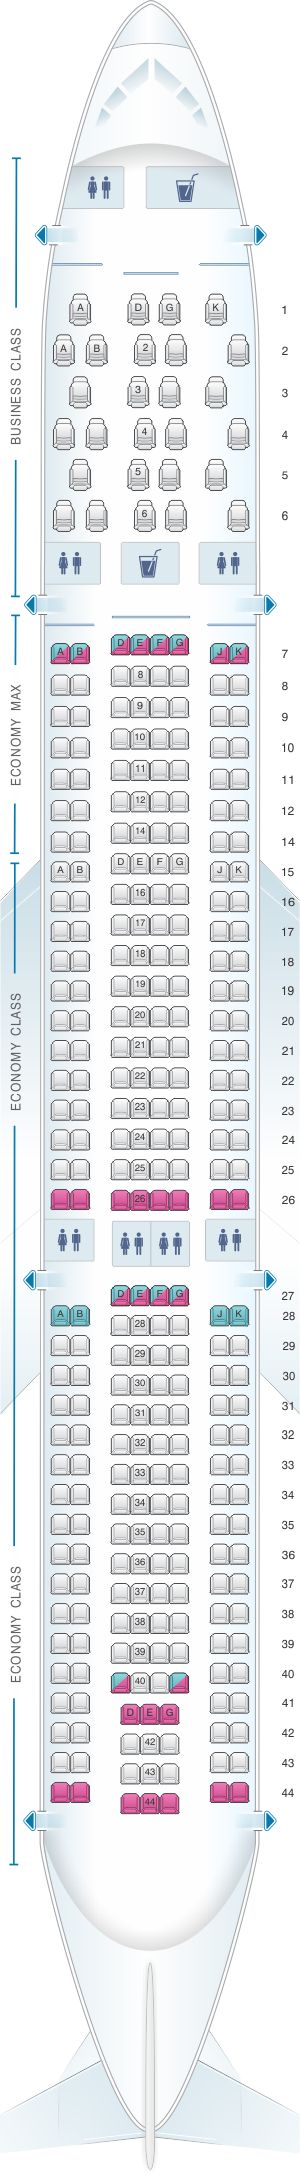 Seat Map Edelweiss Air Airbus A330 300